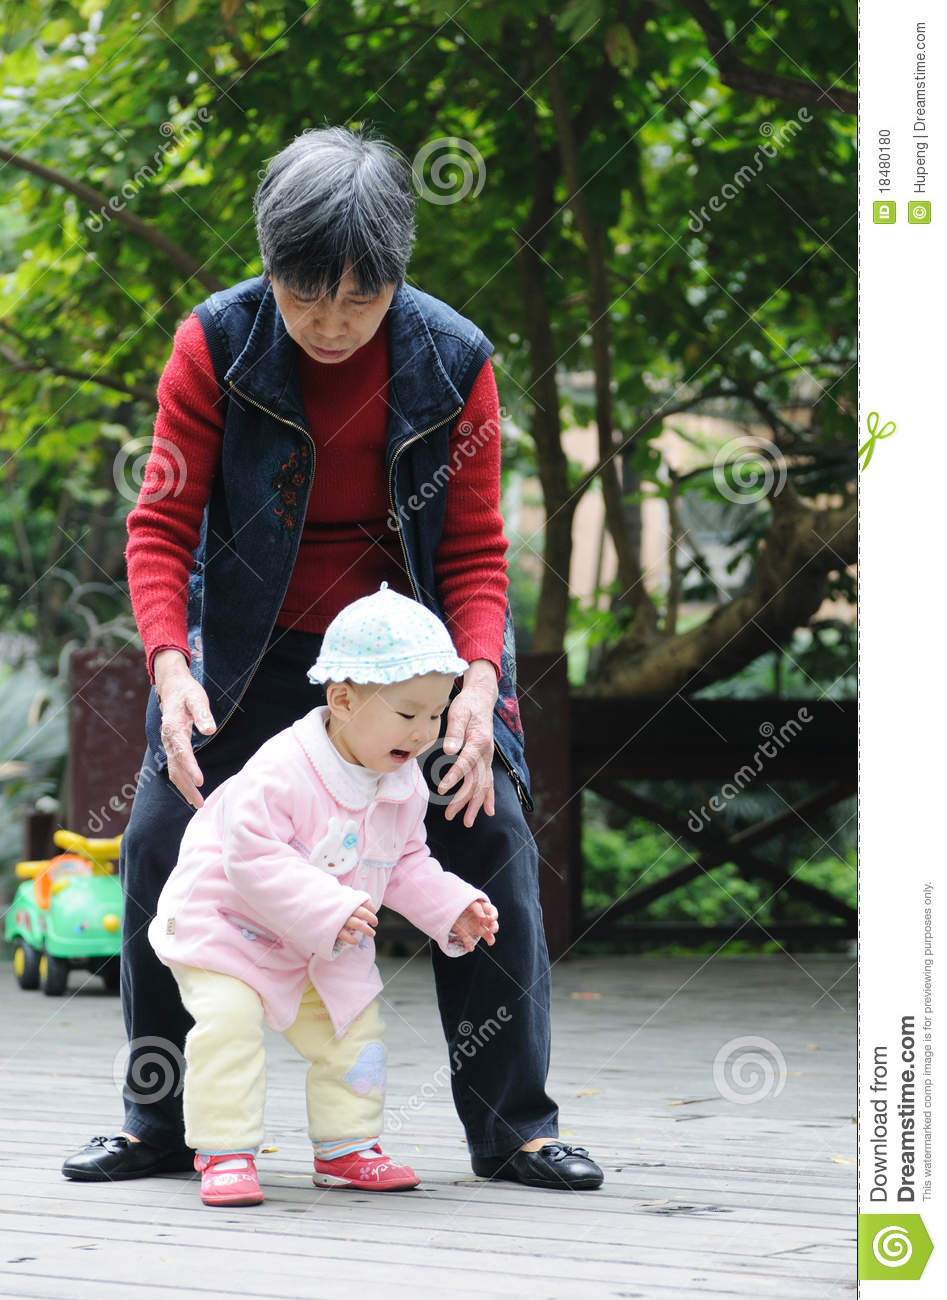 Chinese baby learn to walk stock photo Image of